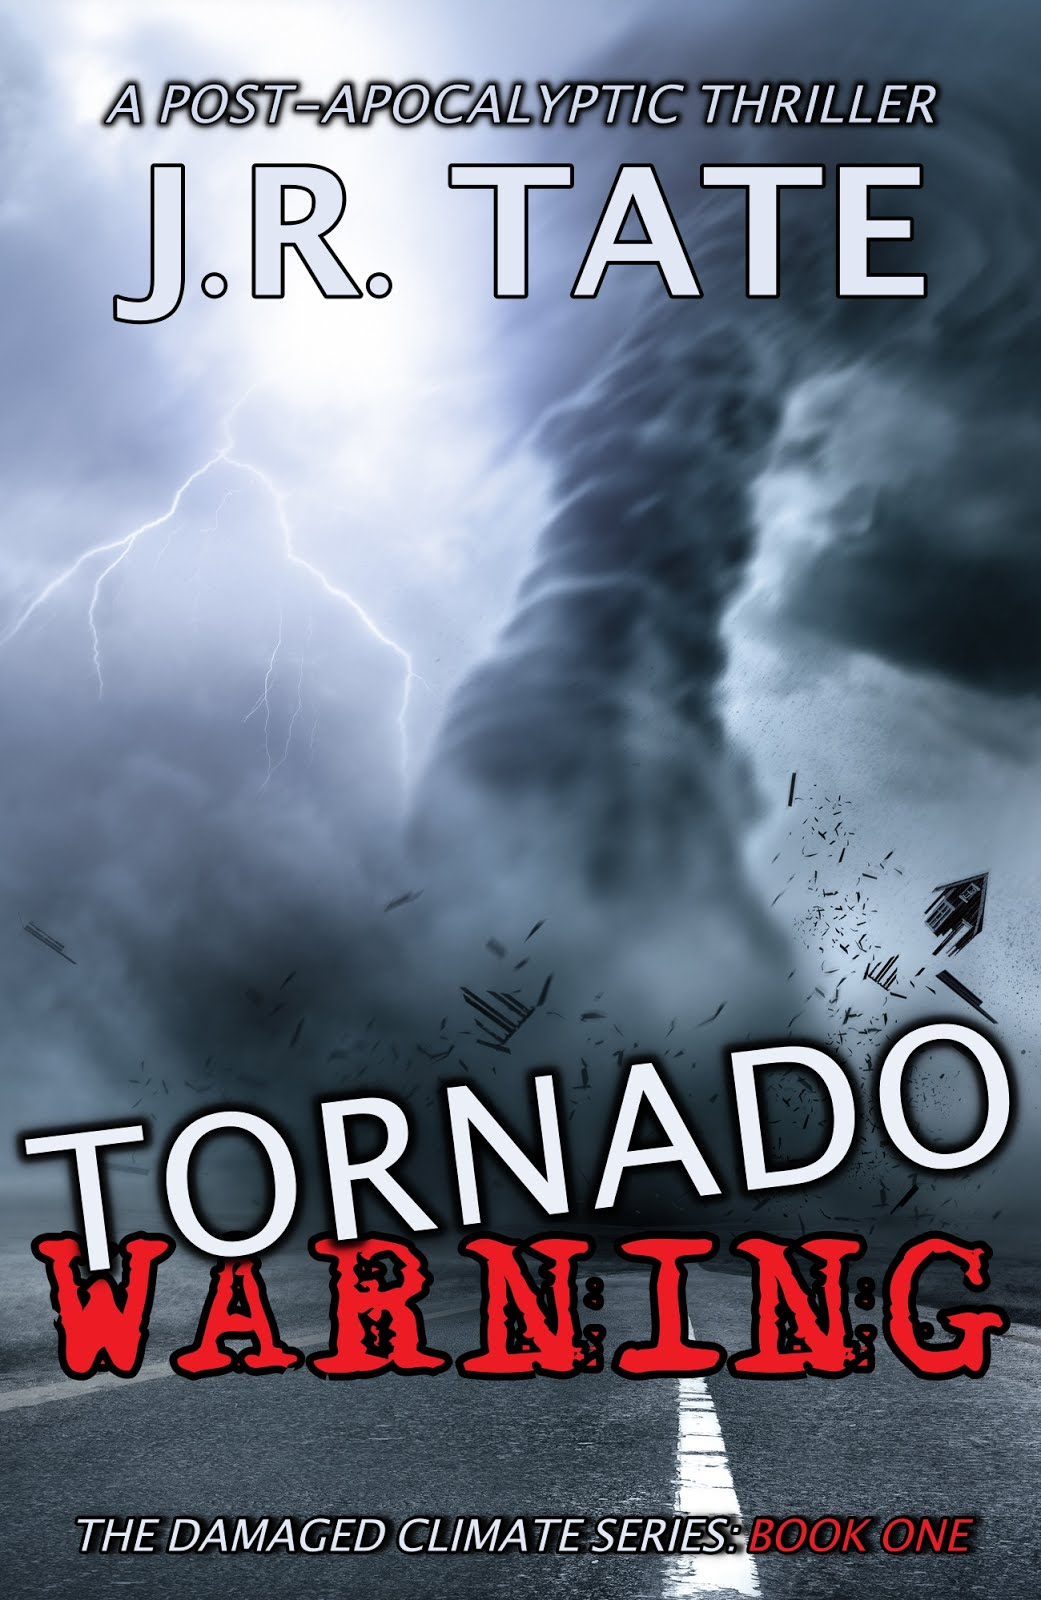 Tornado Warning: A Post-Apocalyptic Thriller (The Damaged Climate Series Book 1)